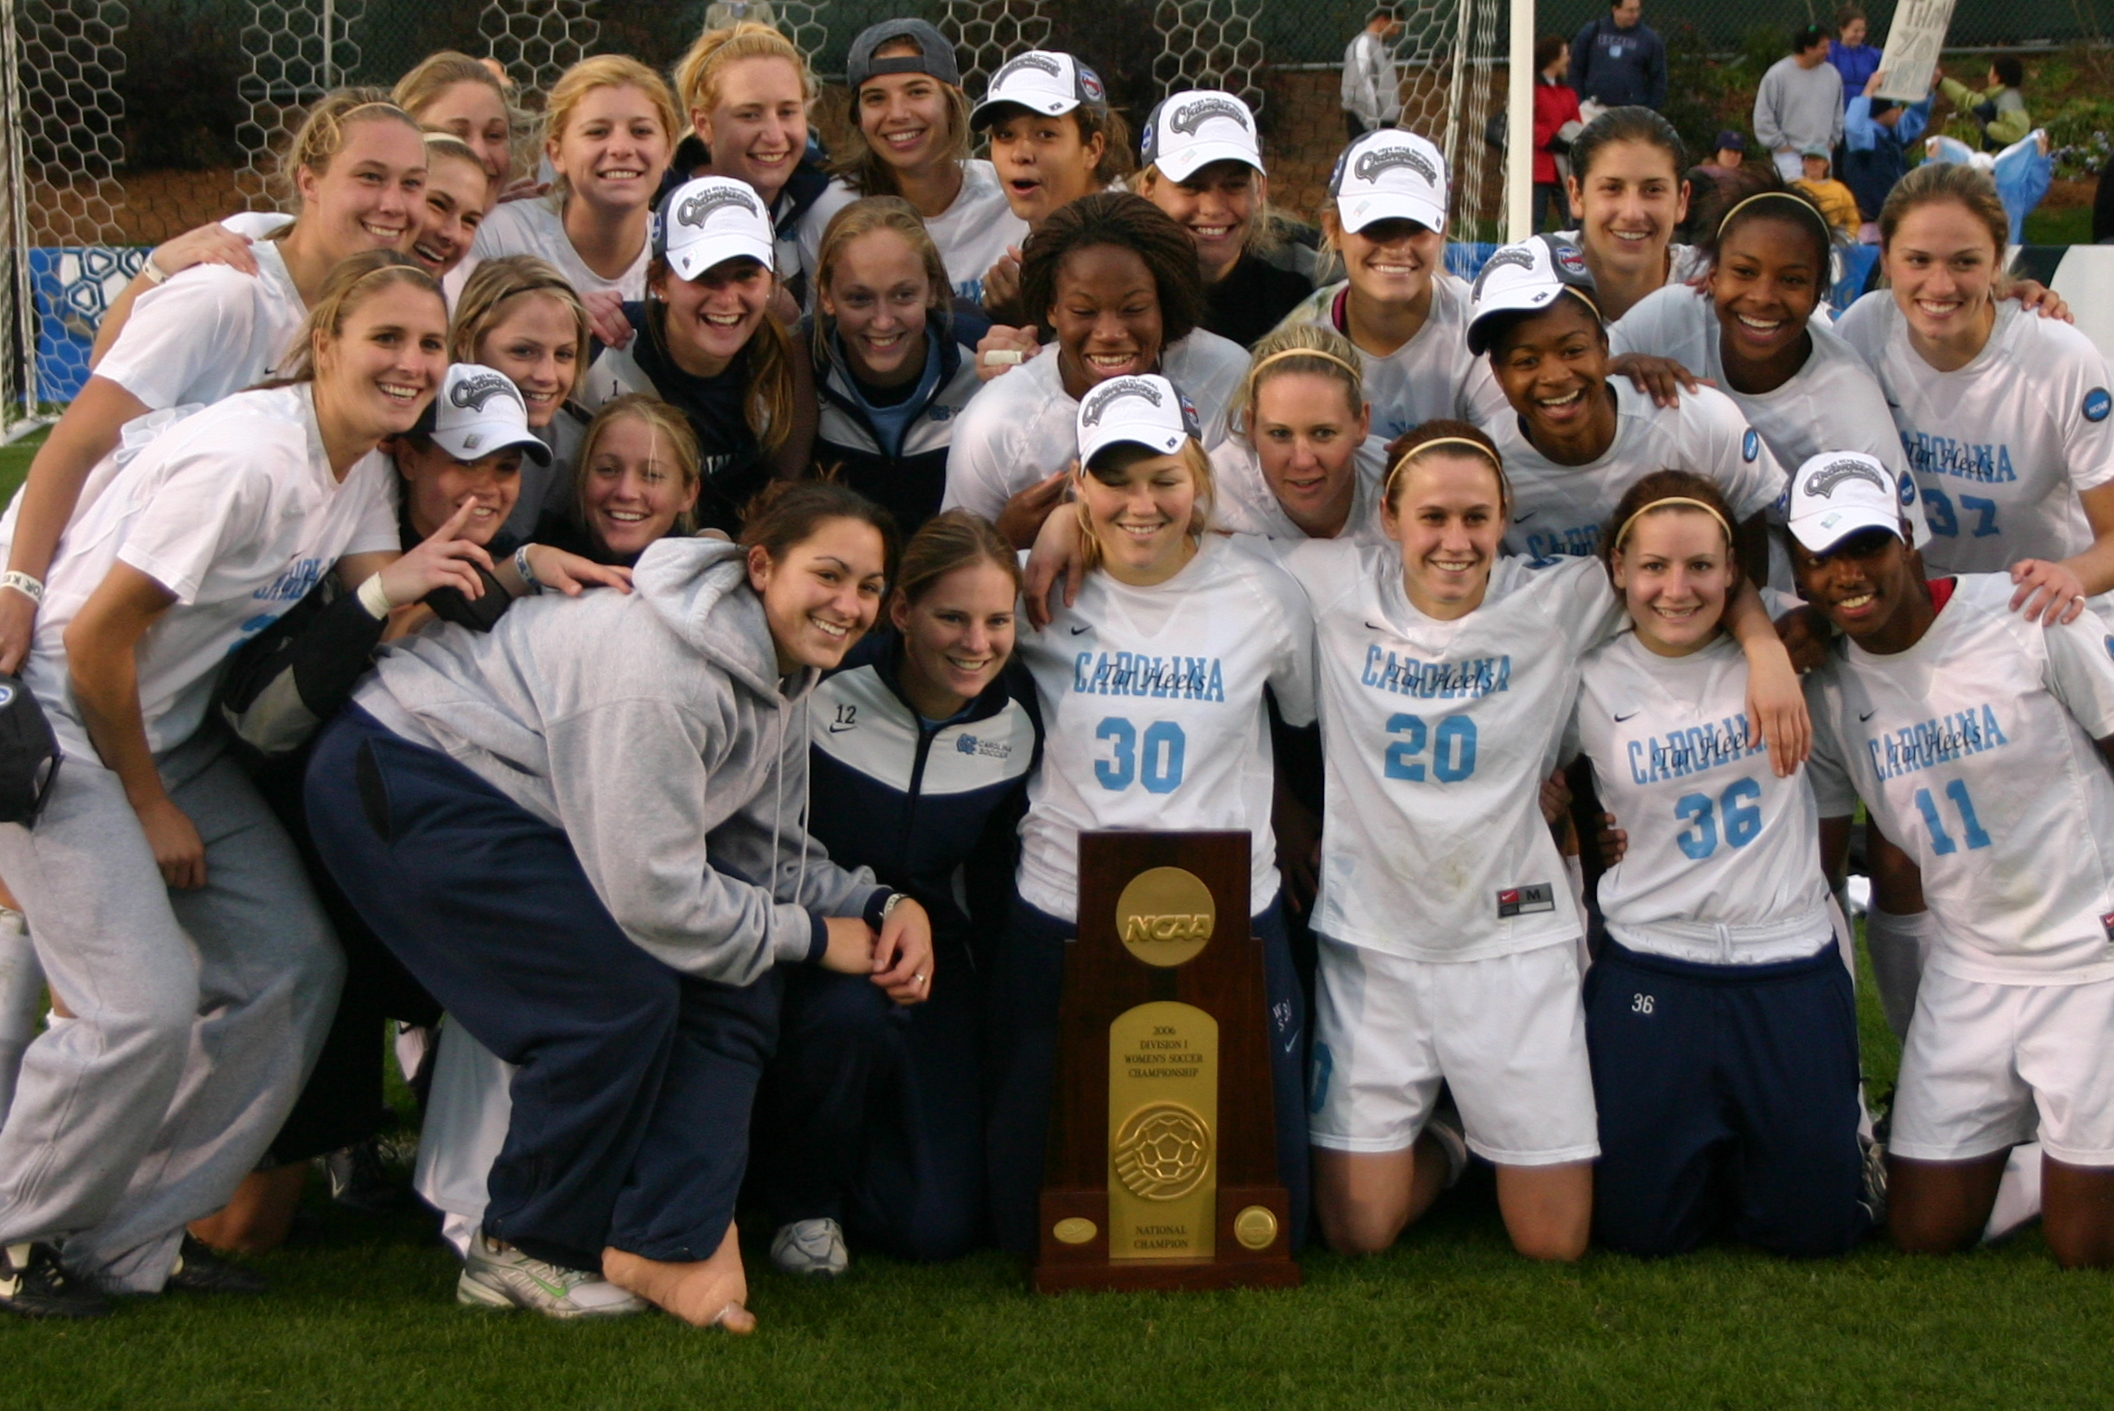 2008 North Carolina team of college hopefuls. How many soccer girls do you recognize?